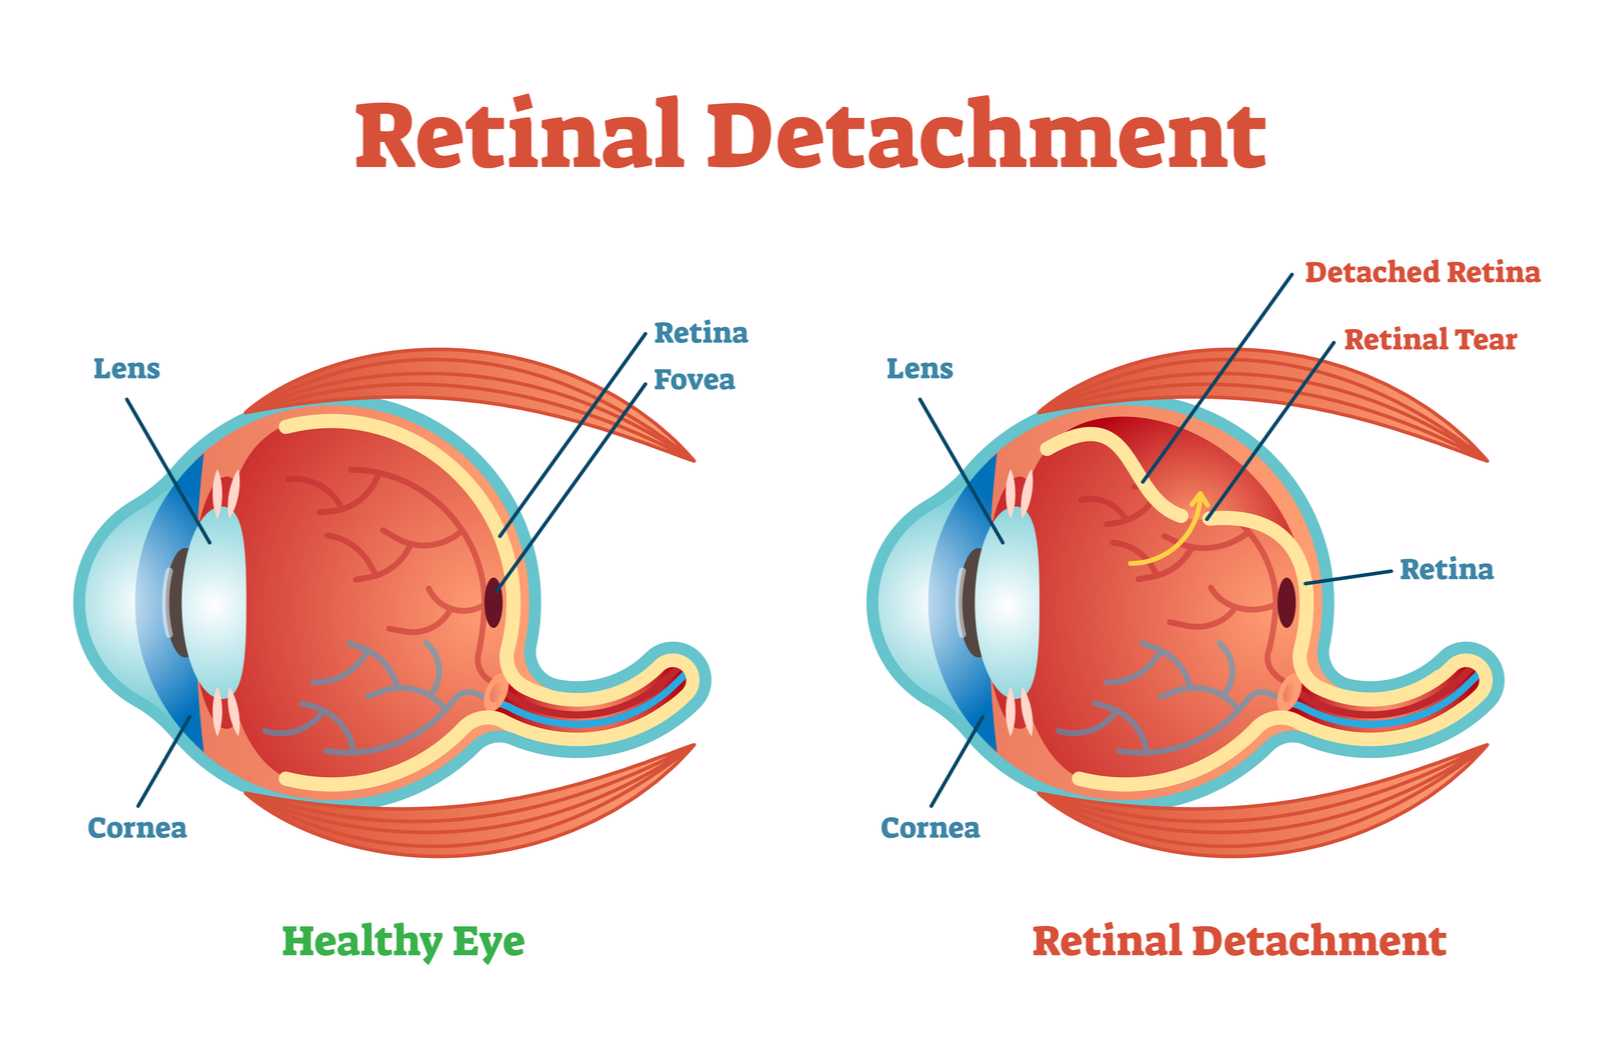 illustration of retinal detachment showing layer breaking down